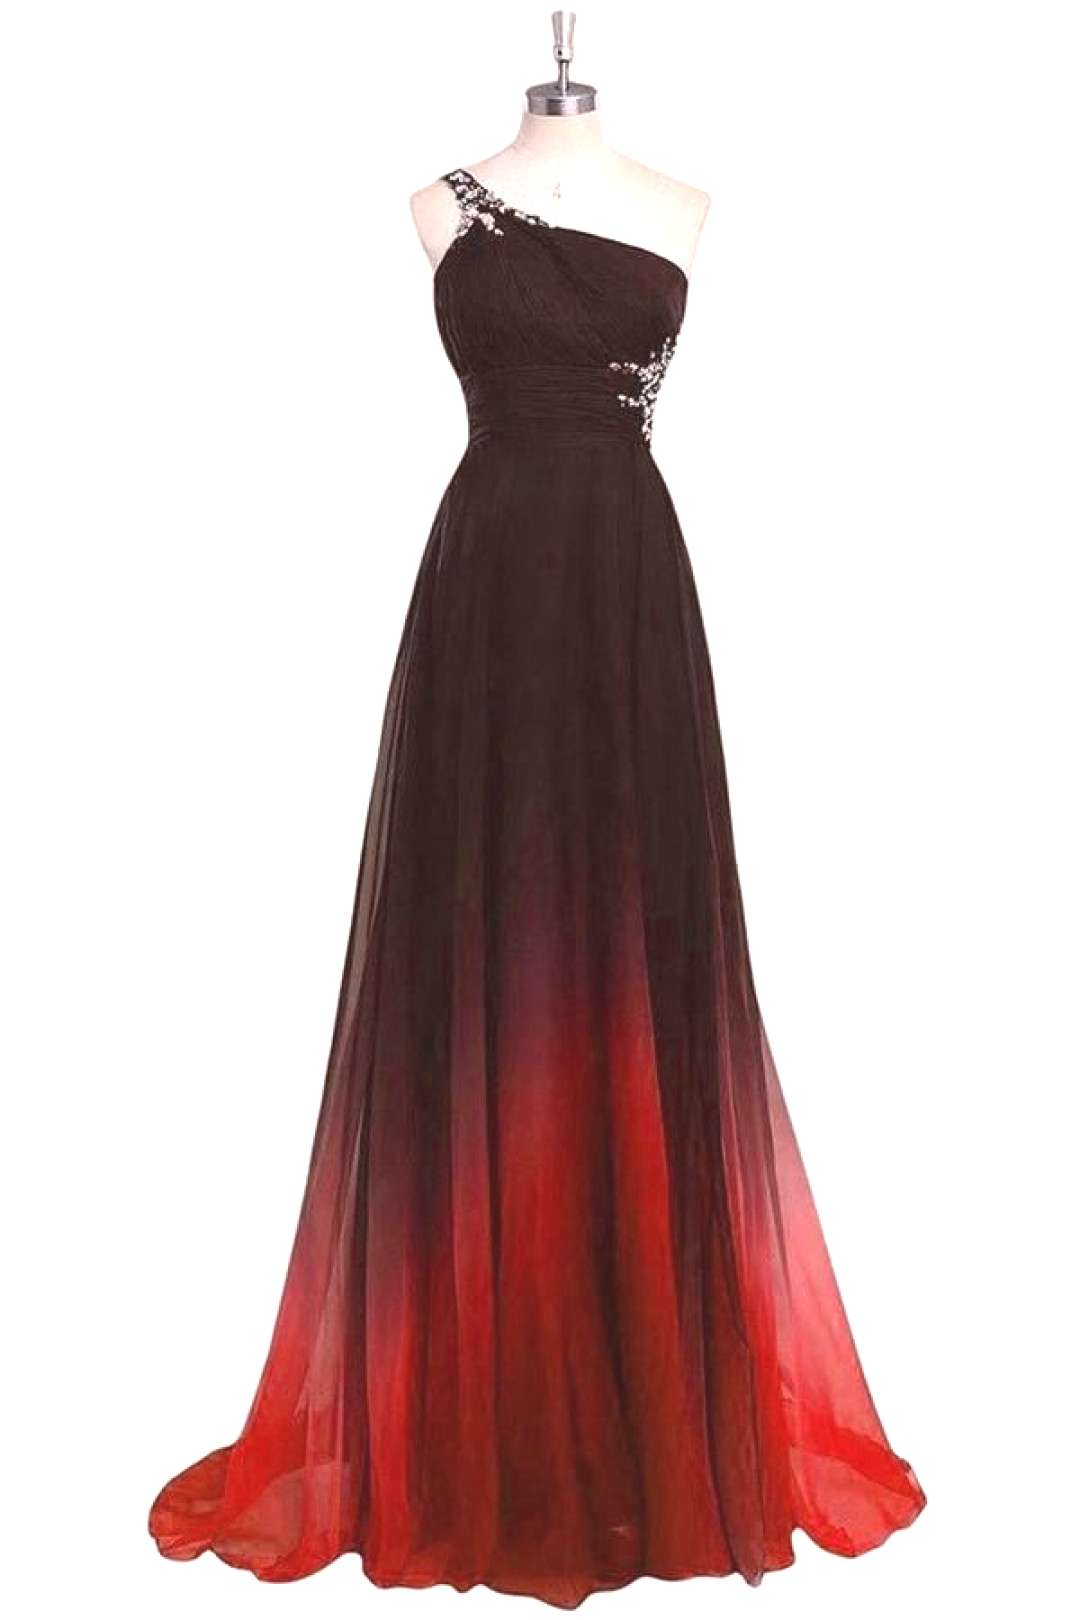 One Shoulder Black And Red Long Ombre Chiffon Beading Open Back Prom Dresses VGFP49619MD